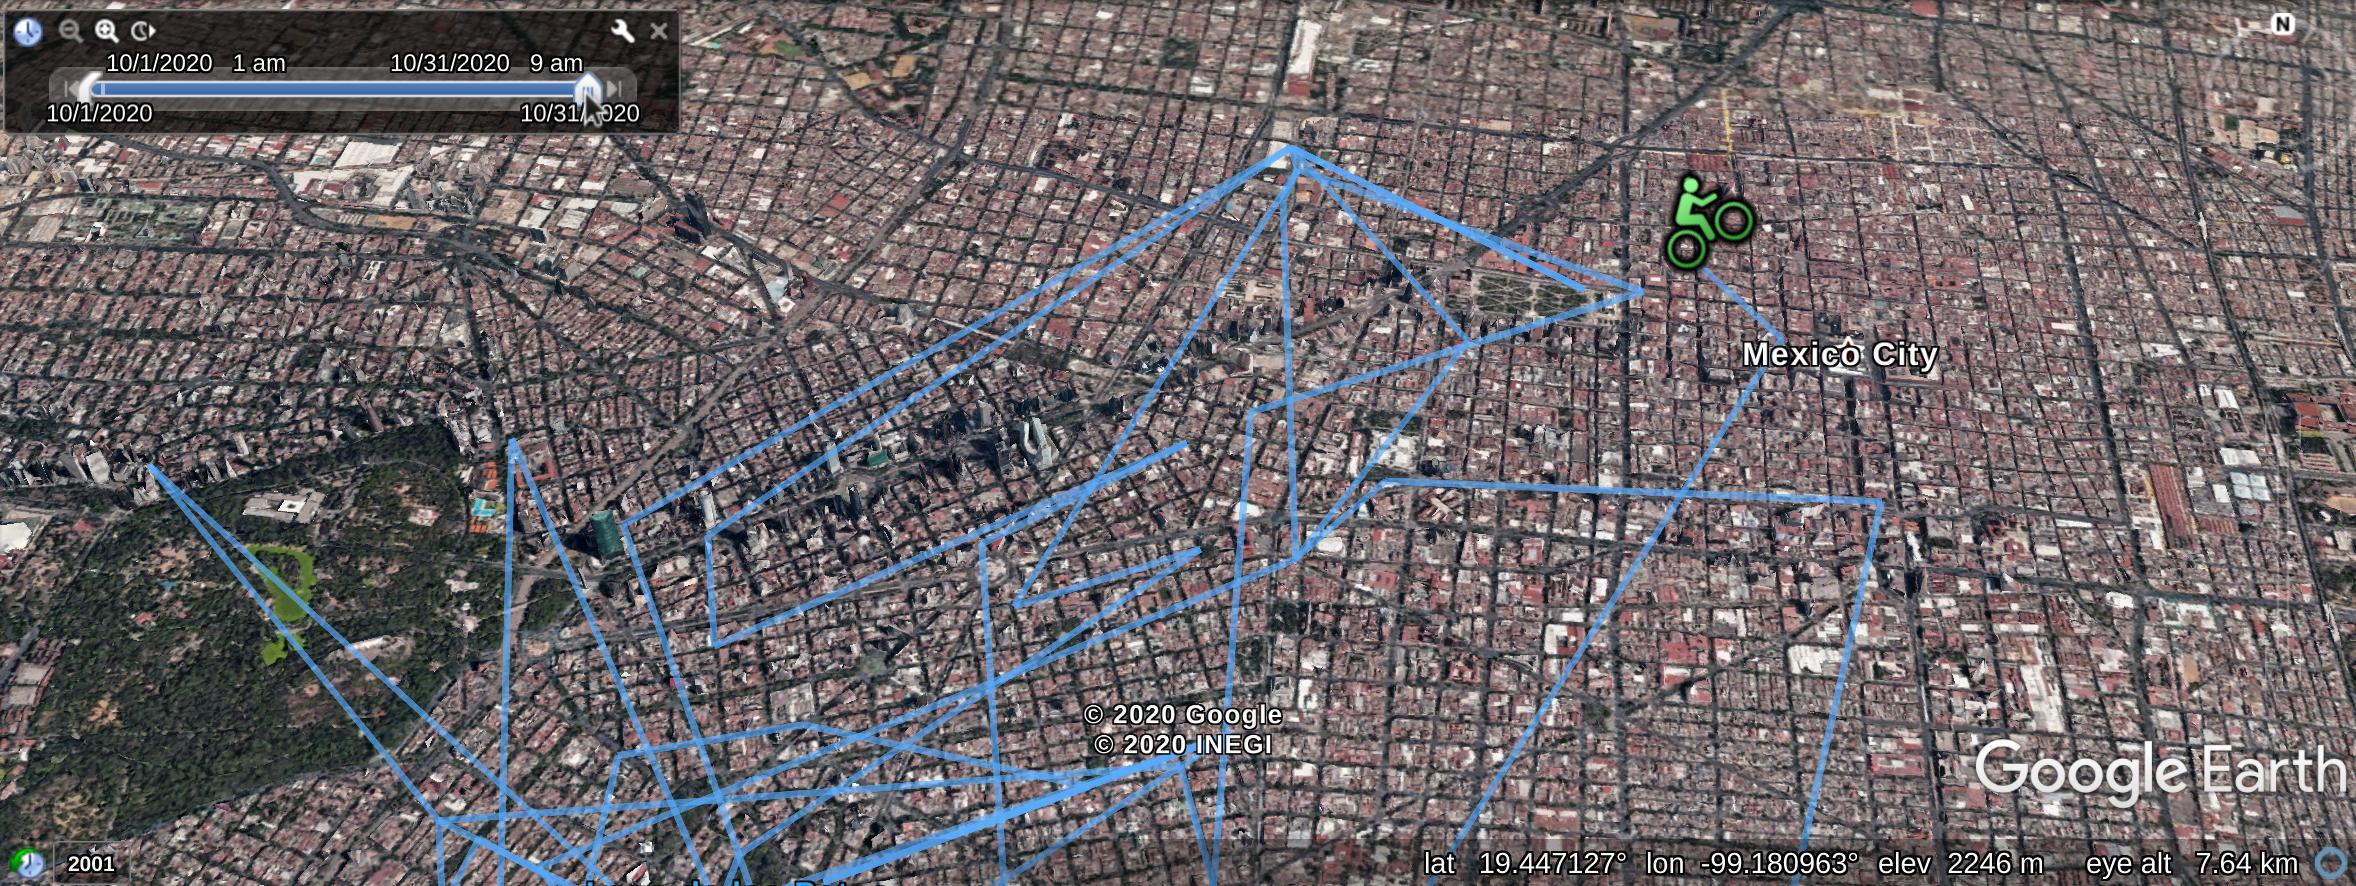 Movimiento sobre una ruta en google Earth